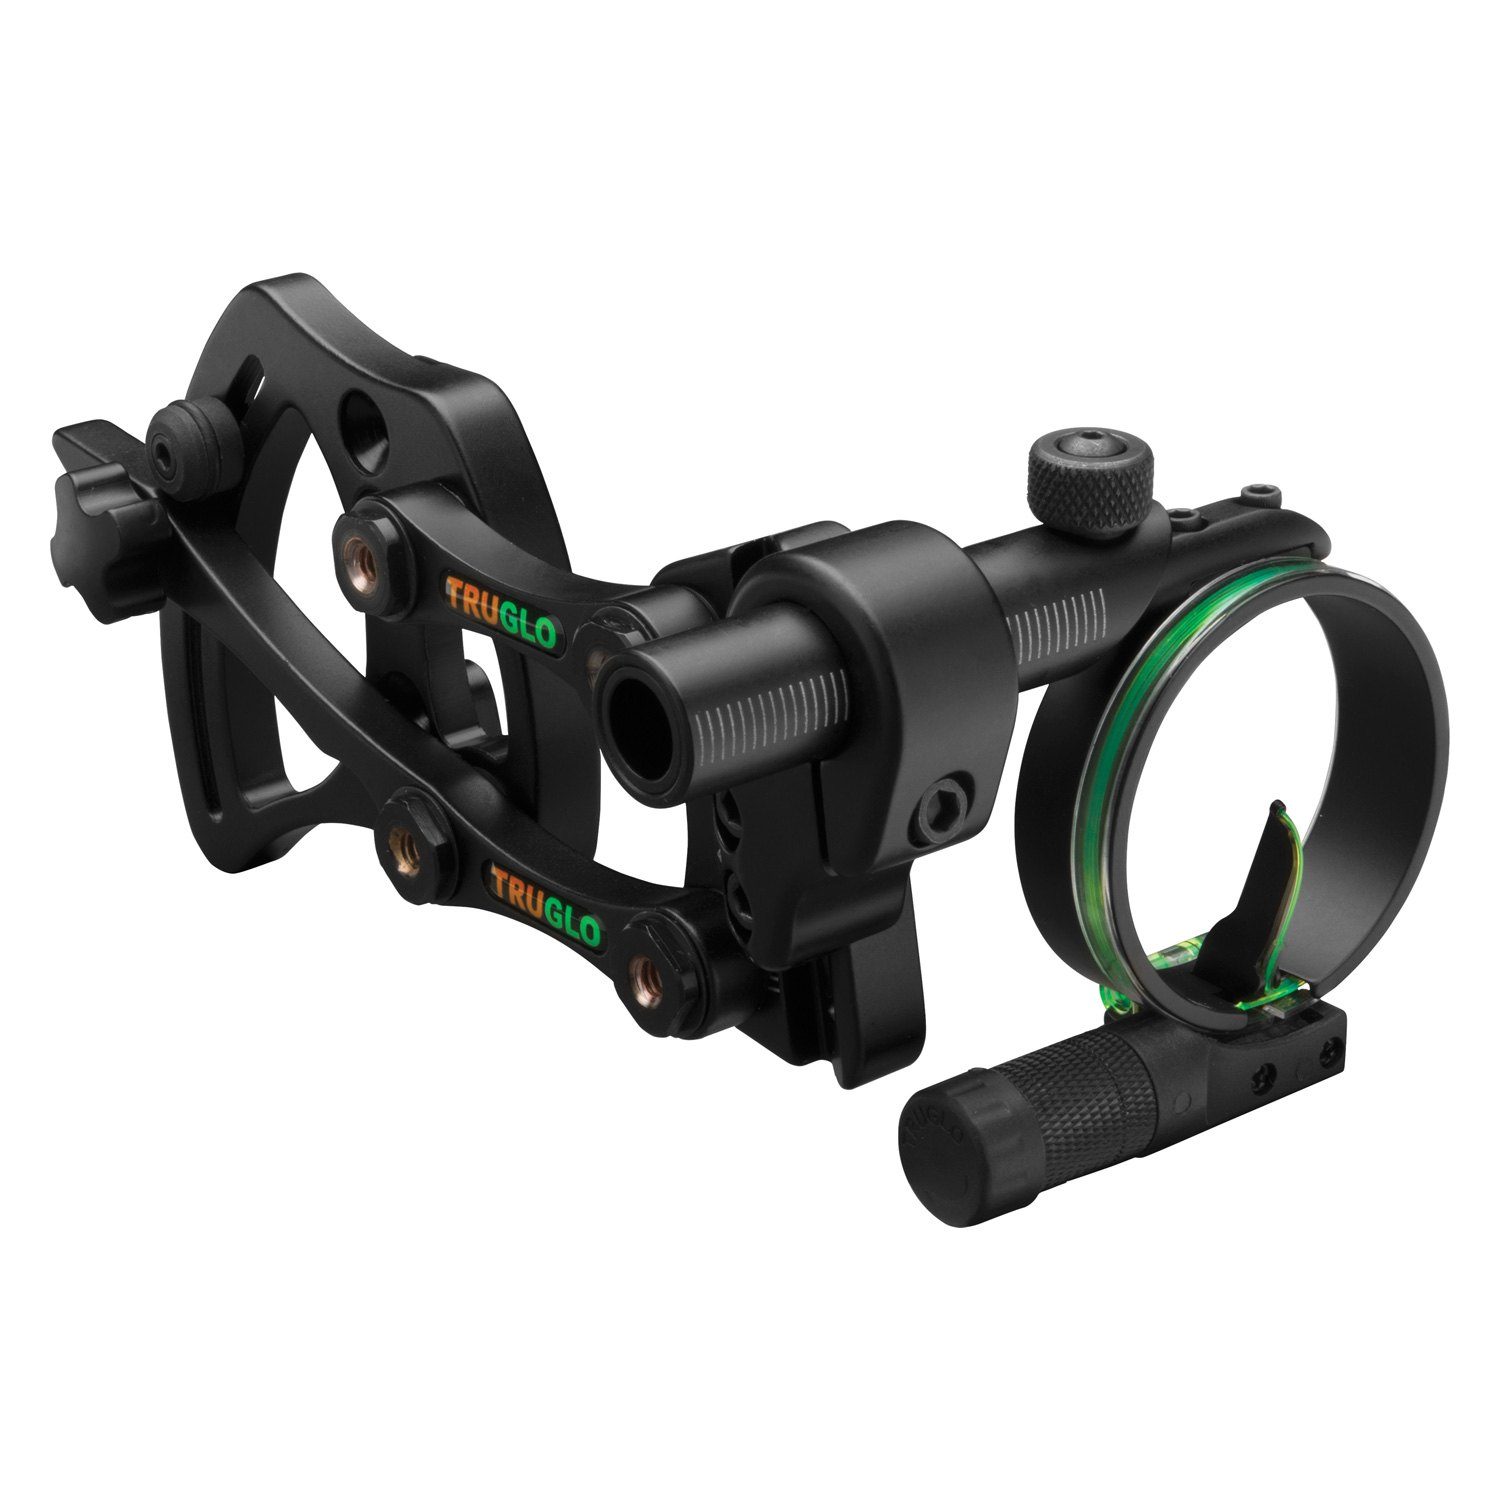 Archery Truglo Bow Sight Outdoor Sports